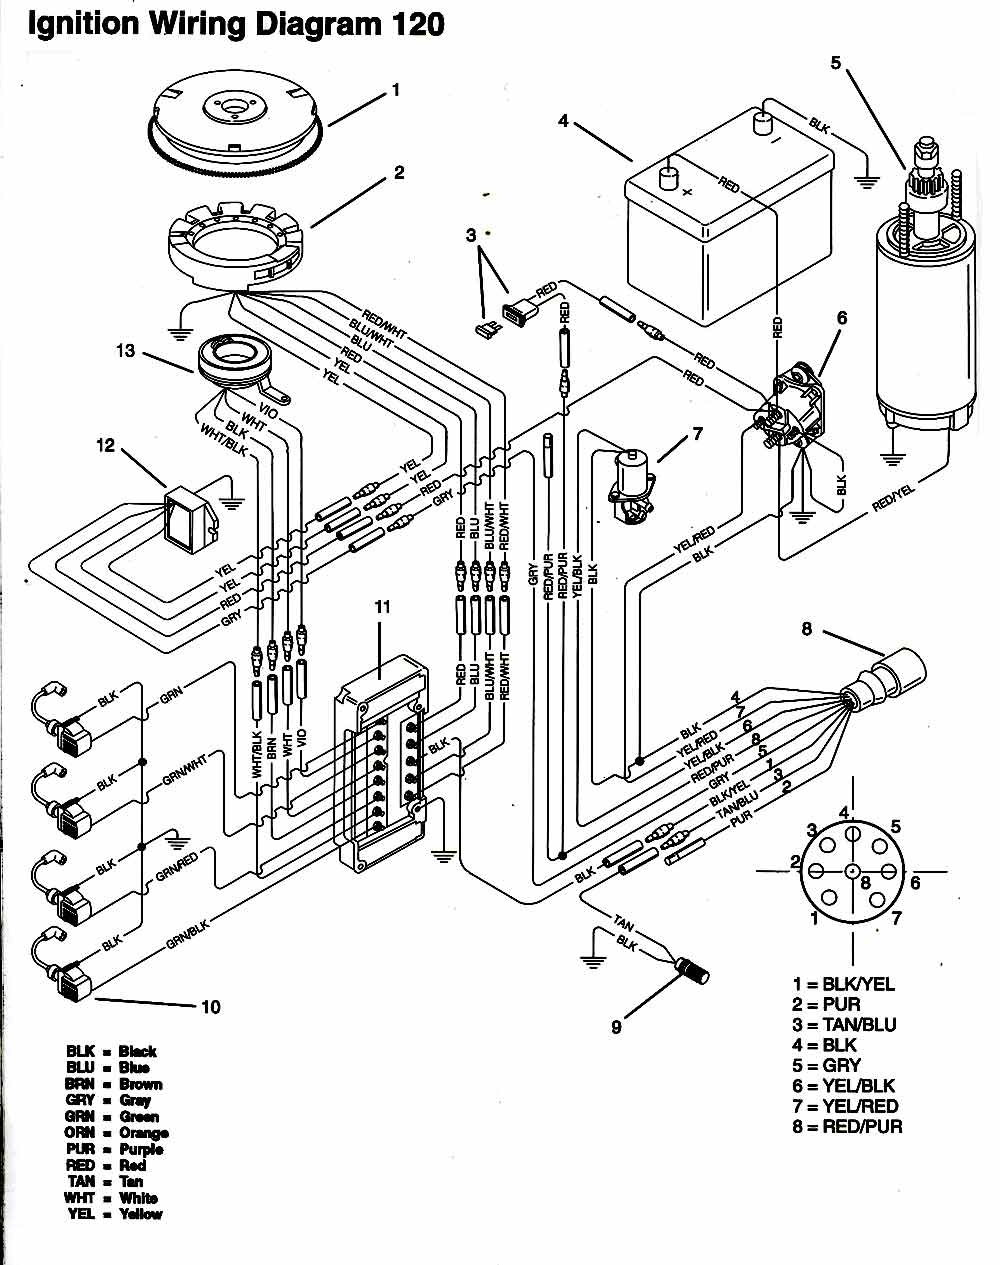 yamaha outboard wiring diagram pdf - yamaha outboard wiring diagram unique  tohatsu 30hp wiring diagram free